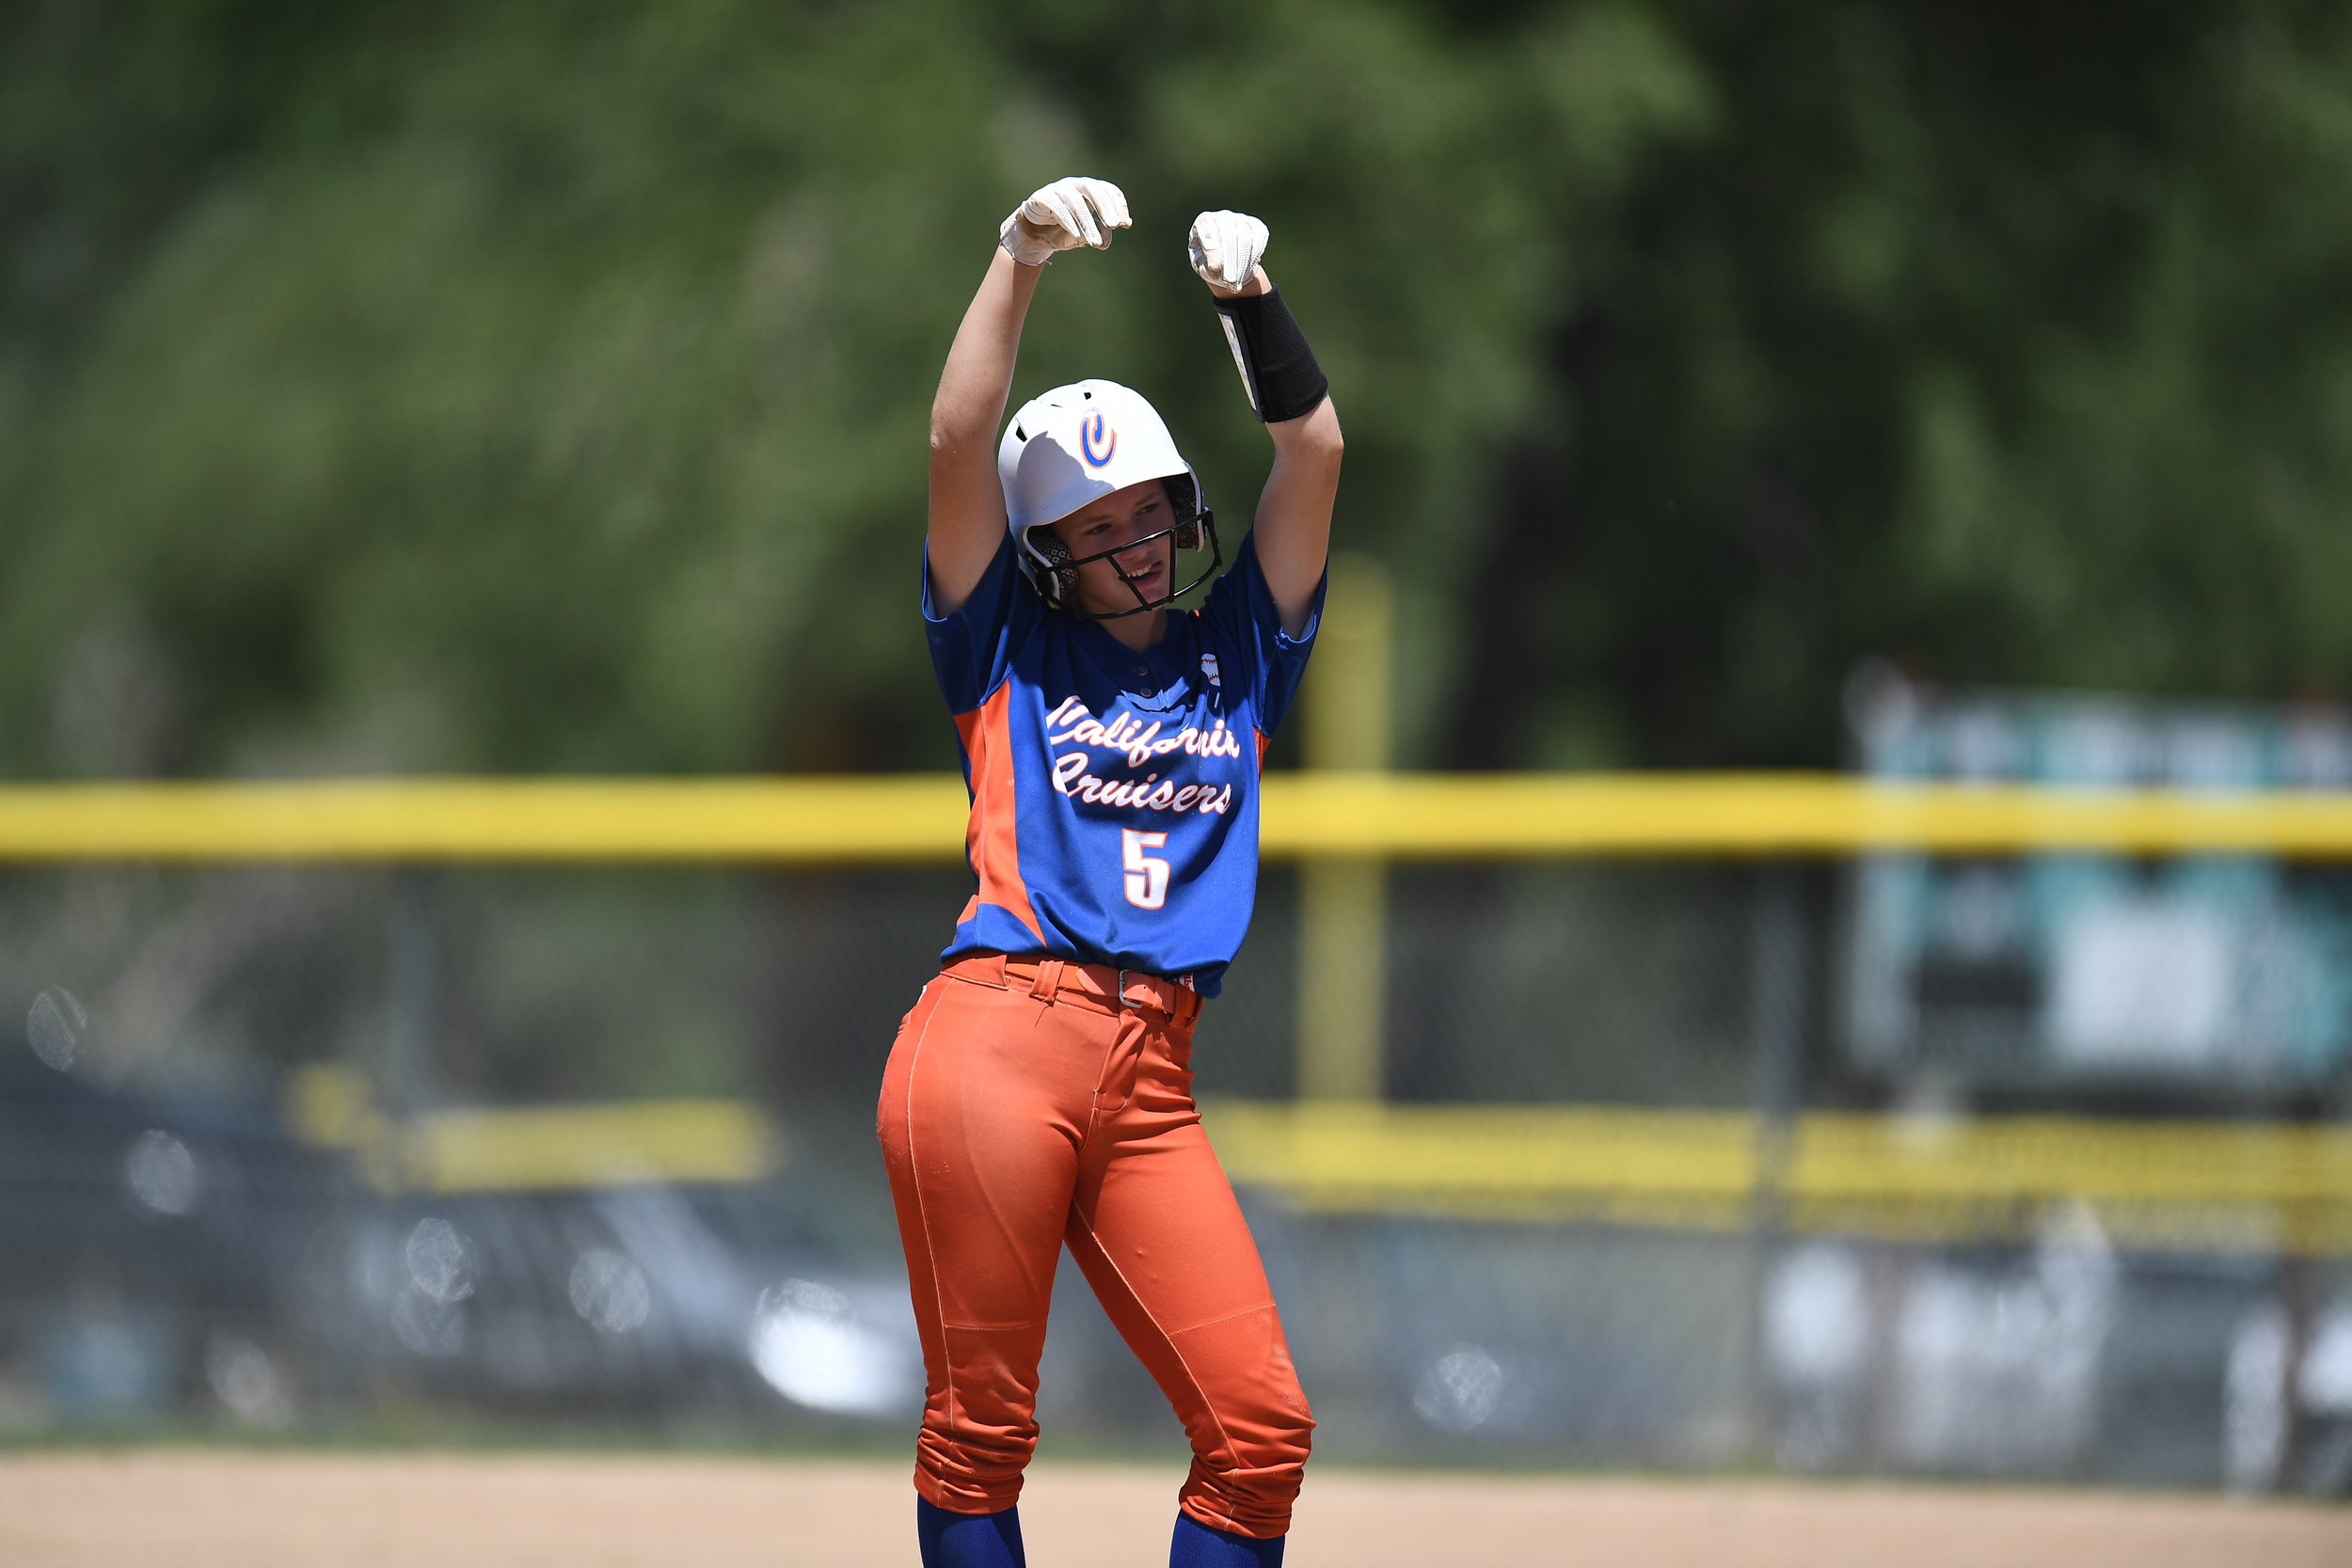 Jas Sievers & Rachel Cid Named To PGF All-American Team